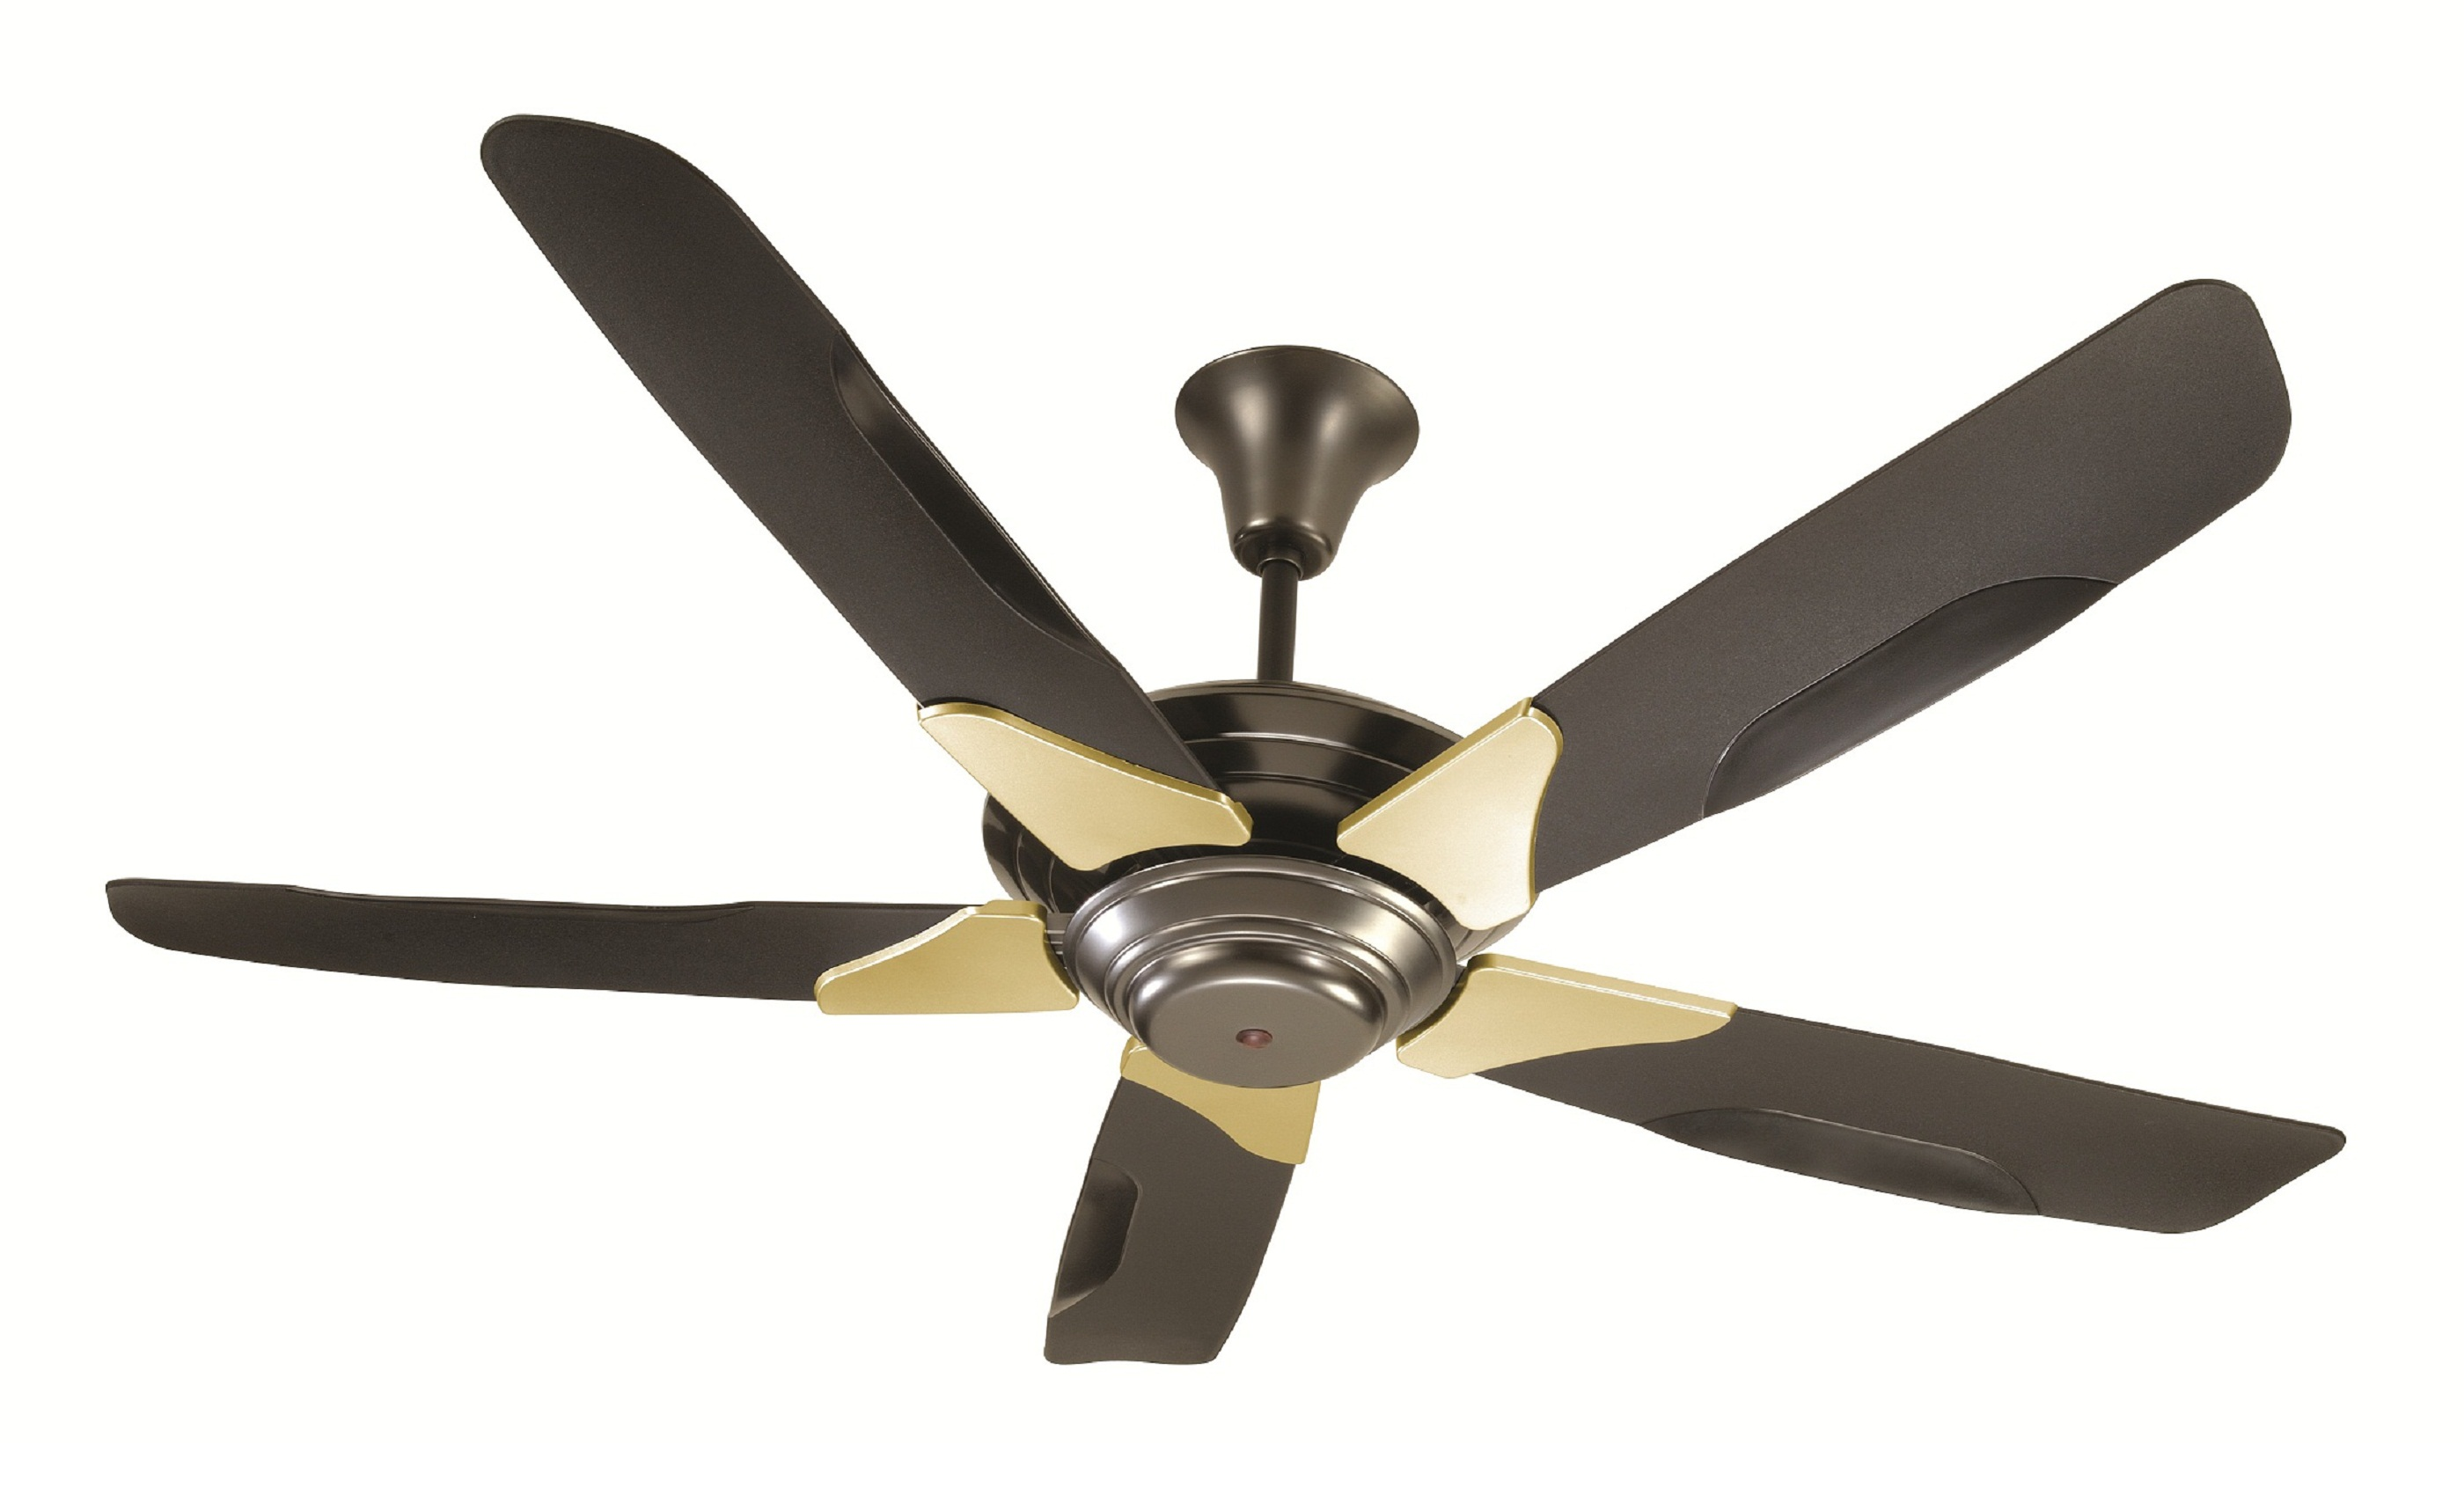 Belt Driven Ceiling Fan With Light ceiling fan - wikipedia, the free ...